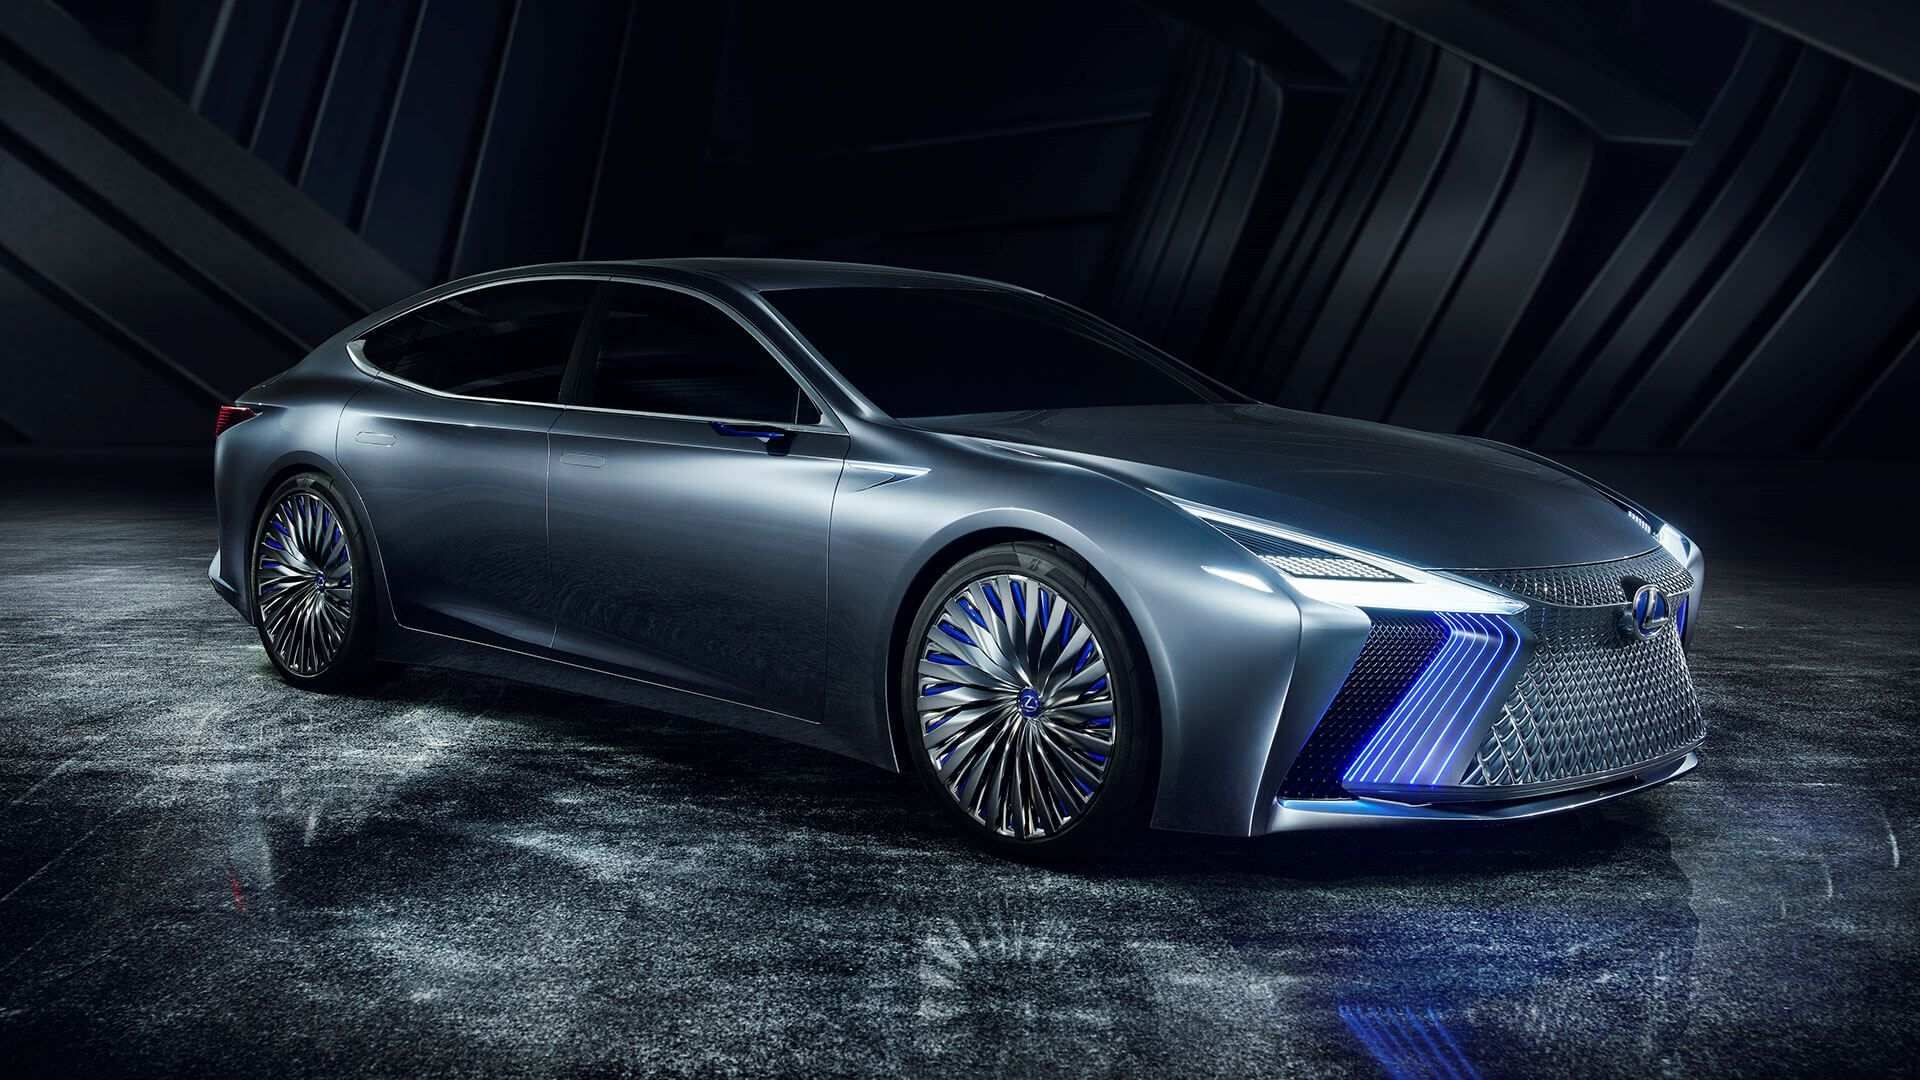 35 Great New Lexus Future Cars 2019 Performance Picture for New Lexus Future Cars 2019 Performance